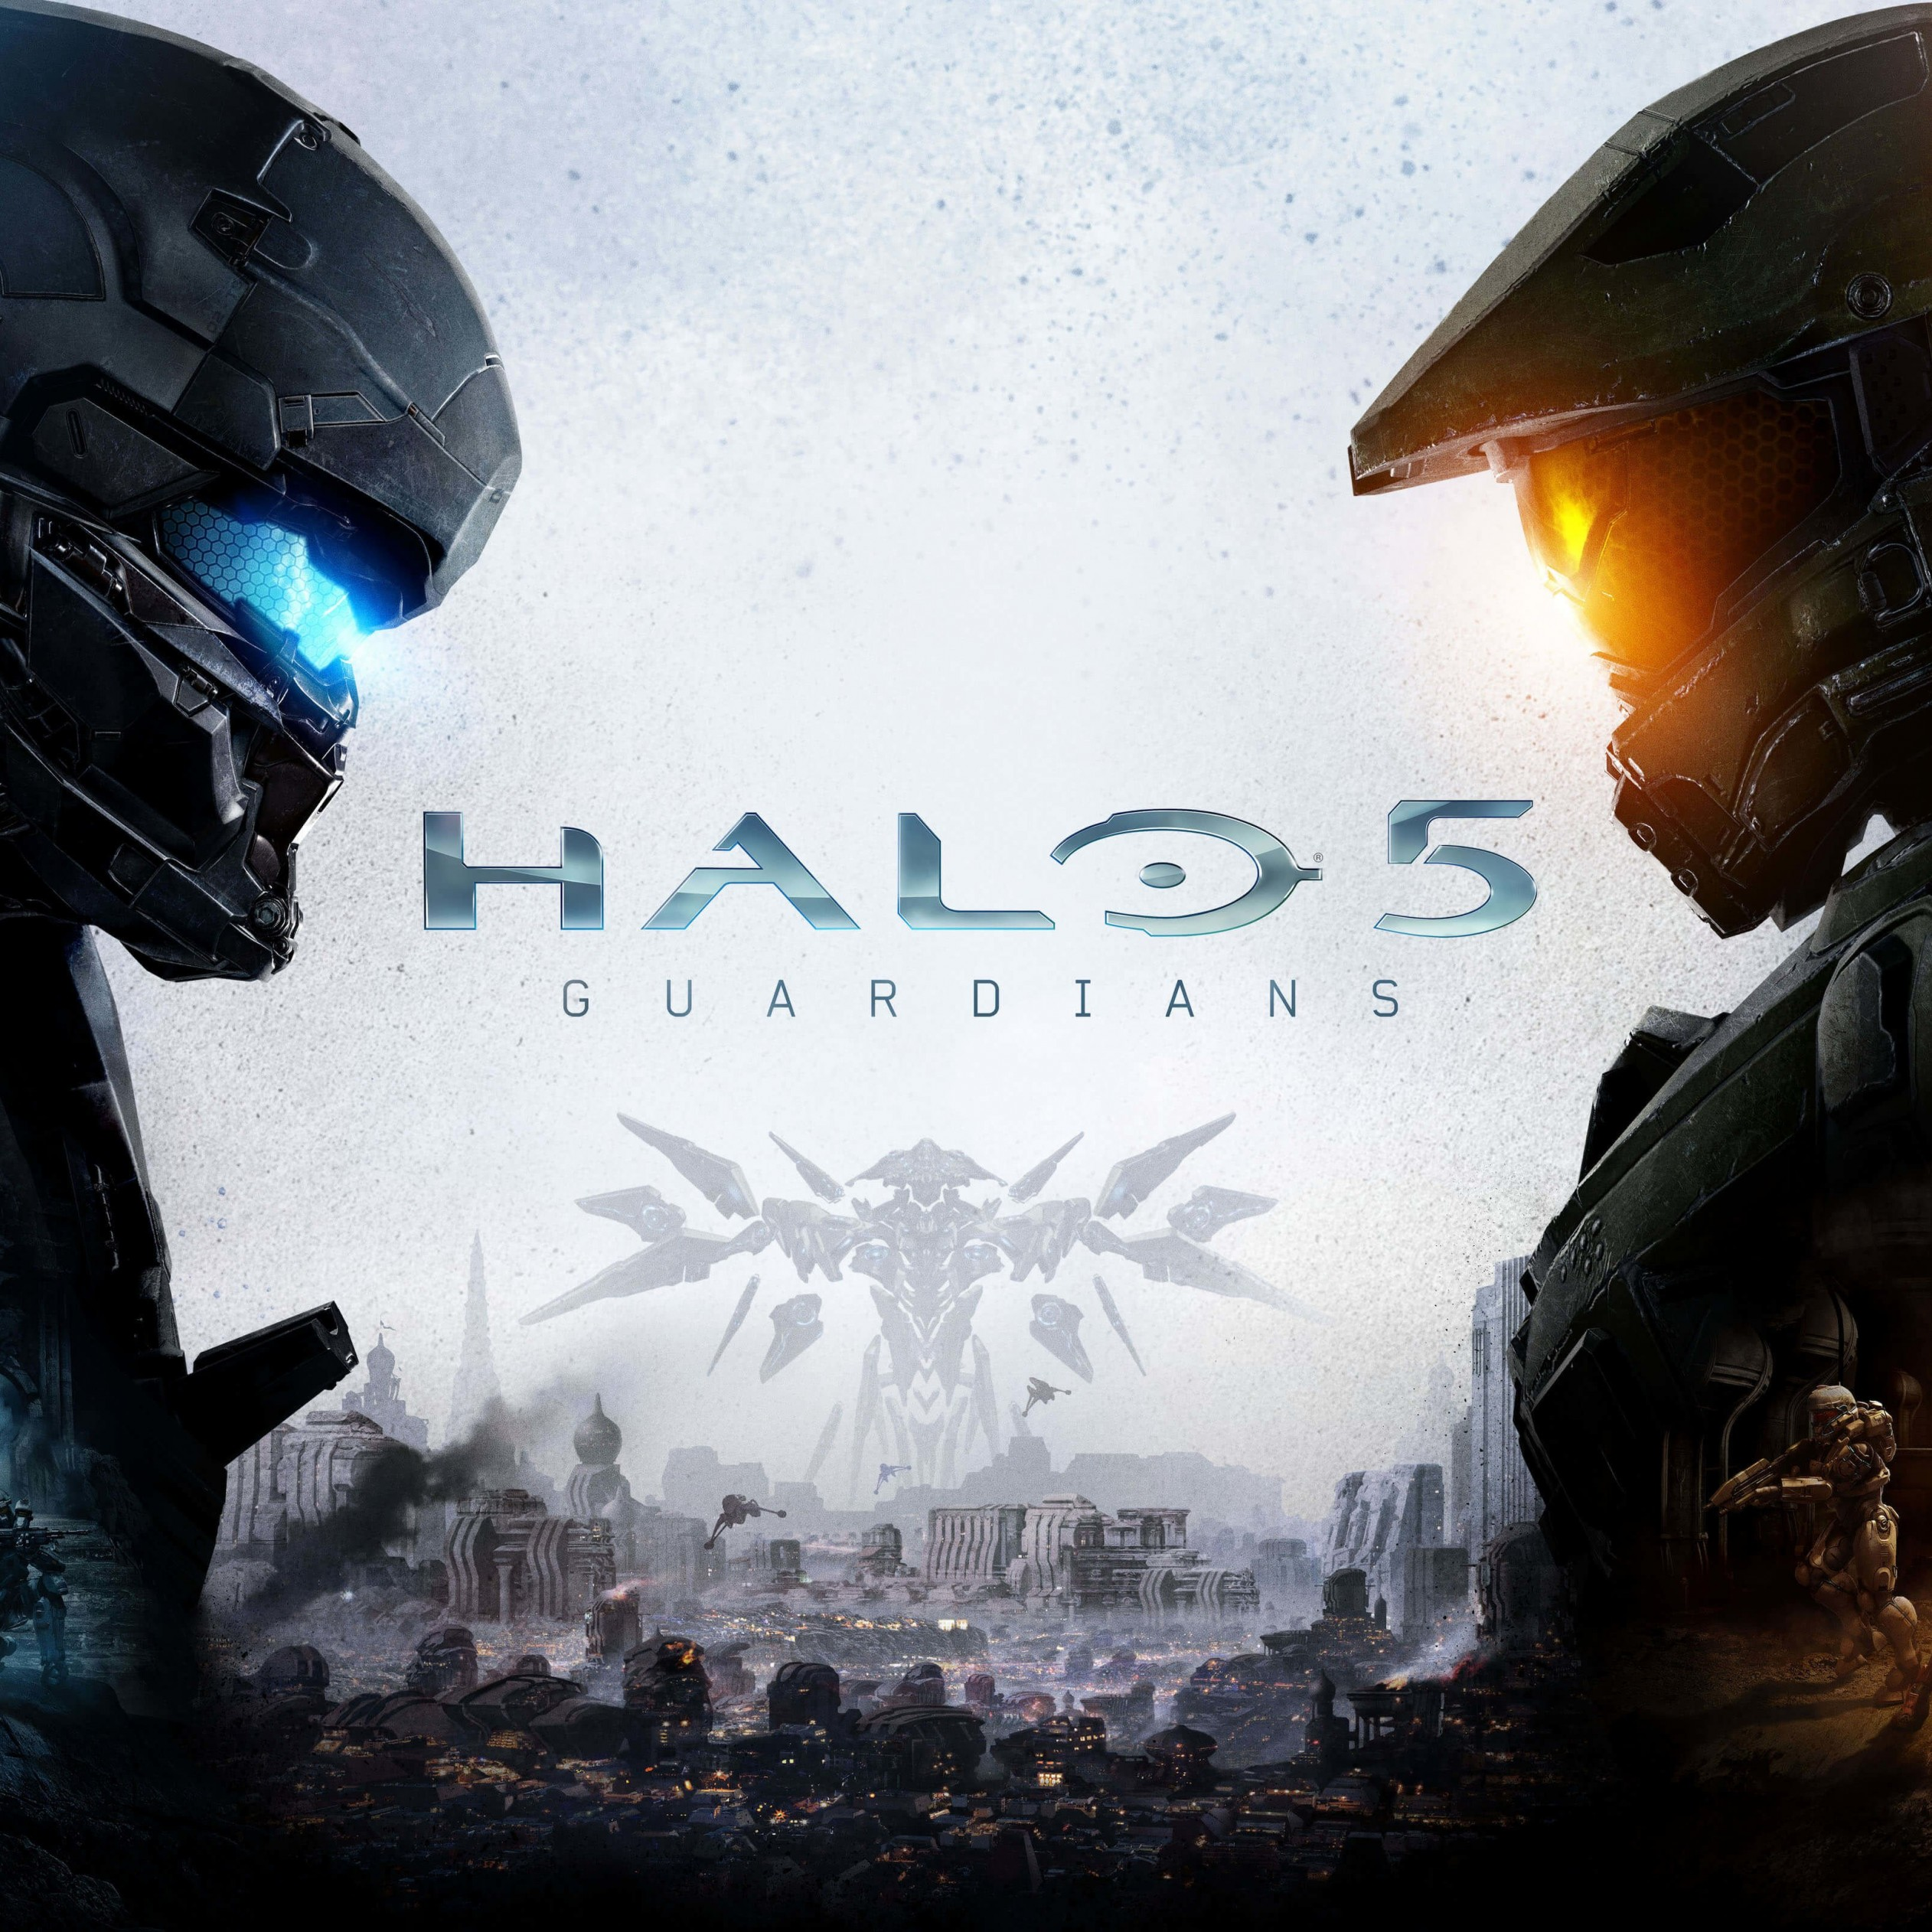 Halo 5: Guardians Wallpaper for Apple iPad 4